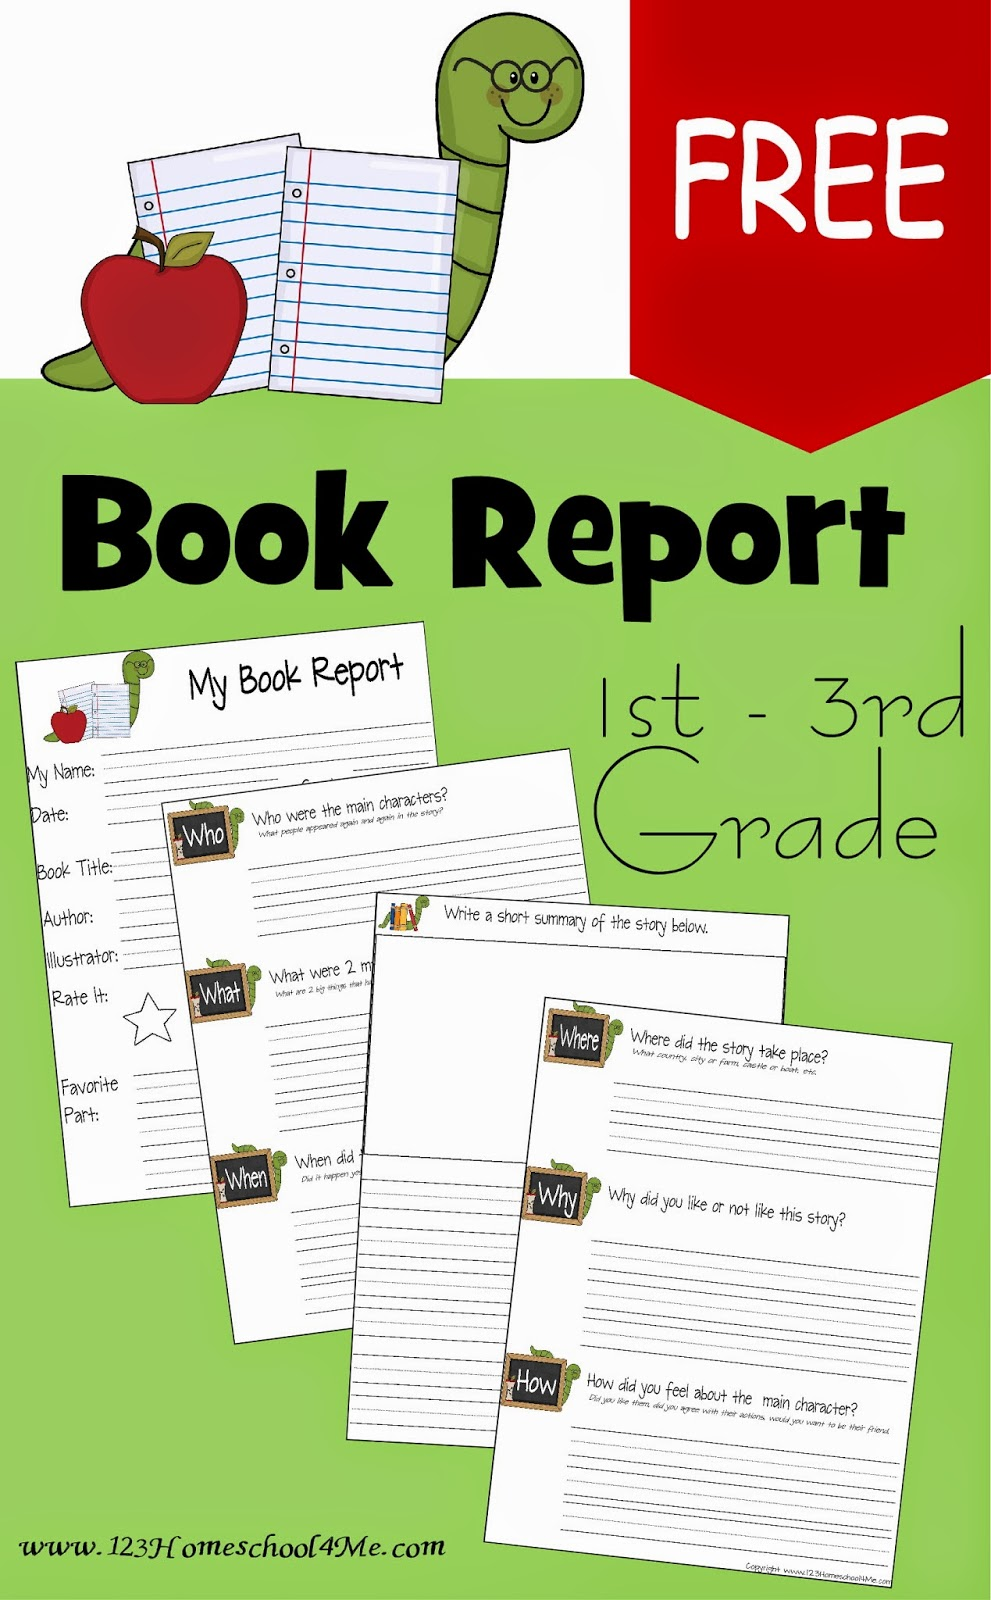 Book Report Forms   FREE Printable Book Report Forms For 1st Grade, 2nd  Grade,  Printable Book Report Forms